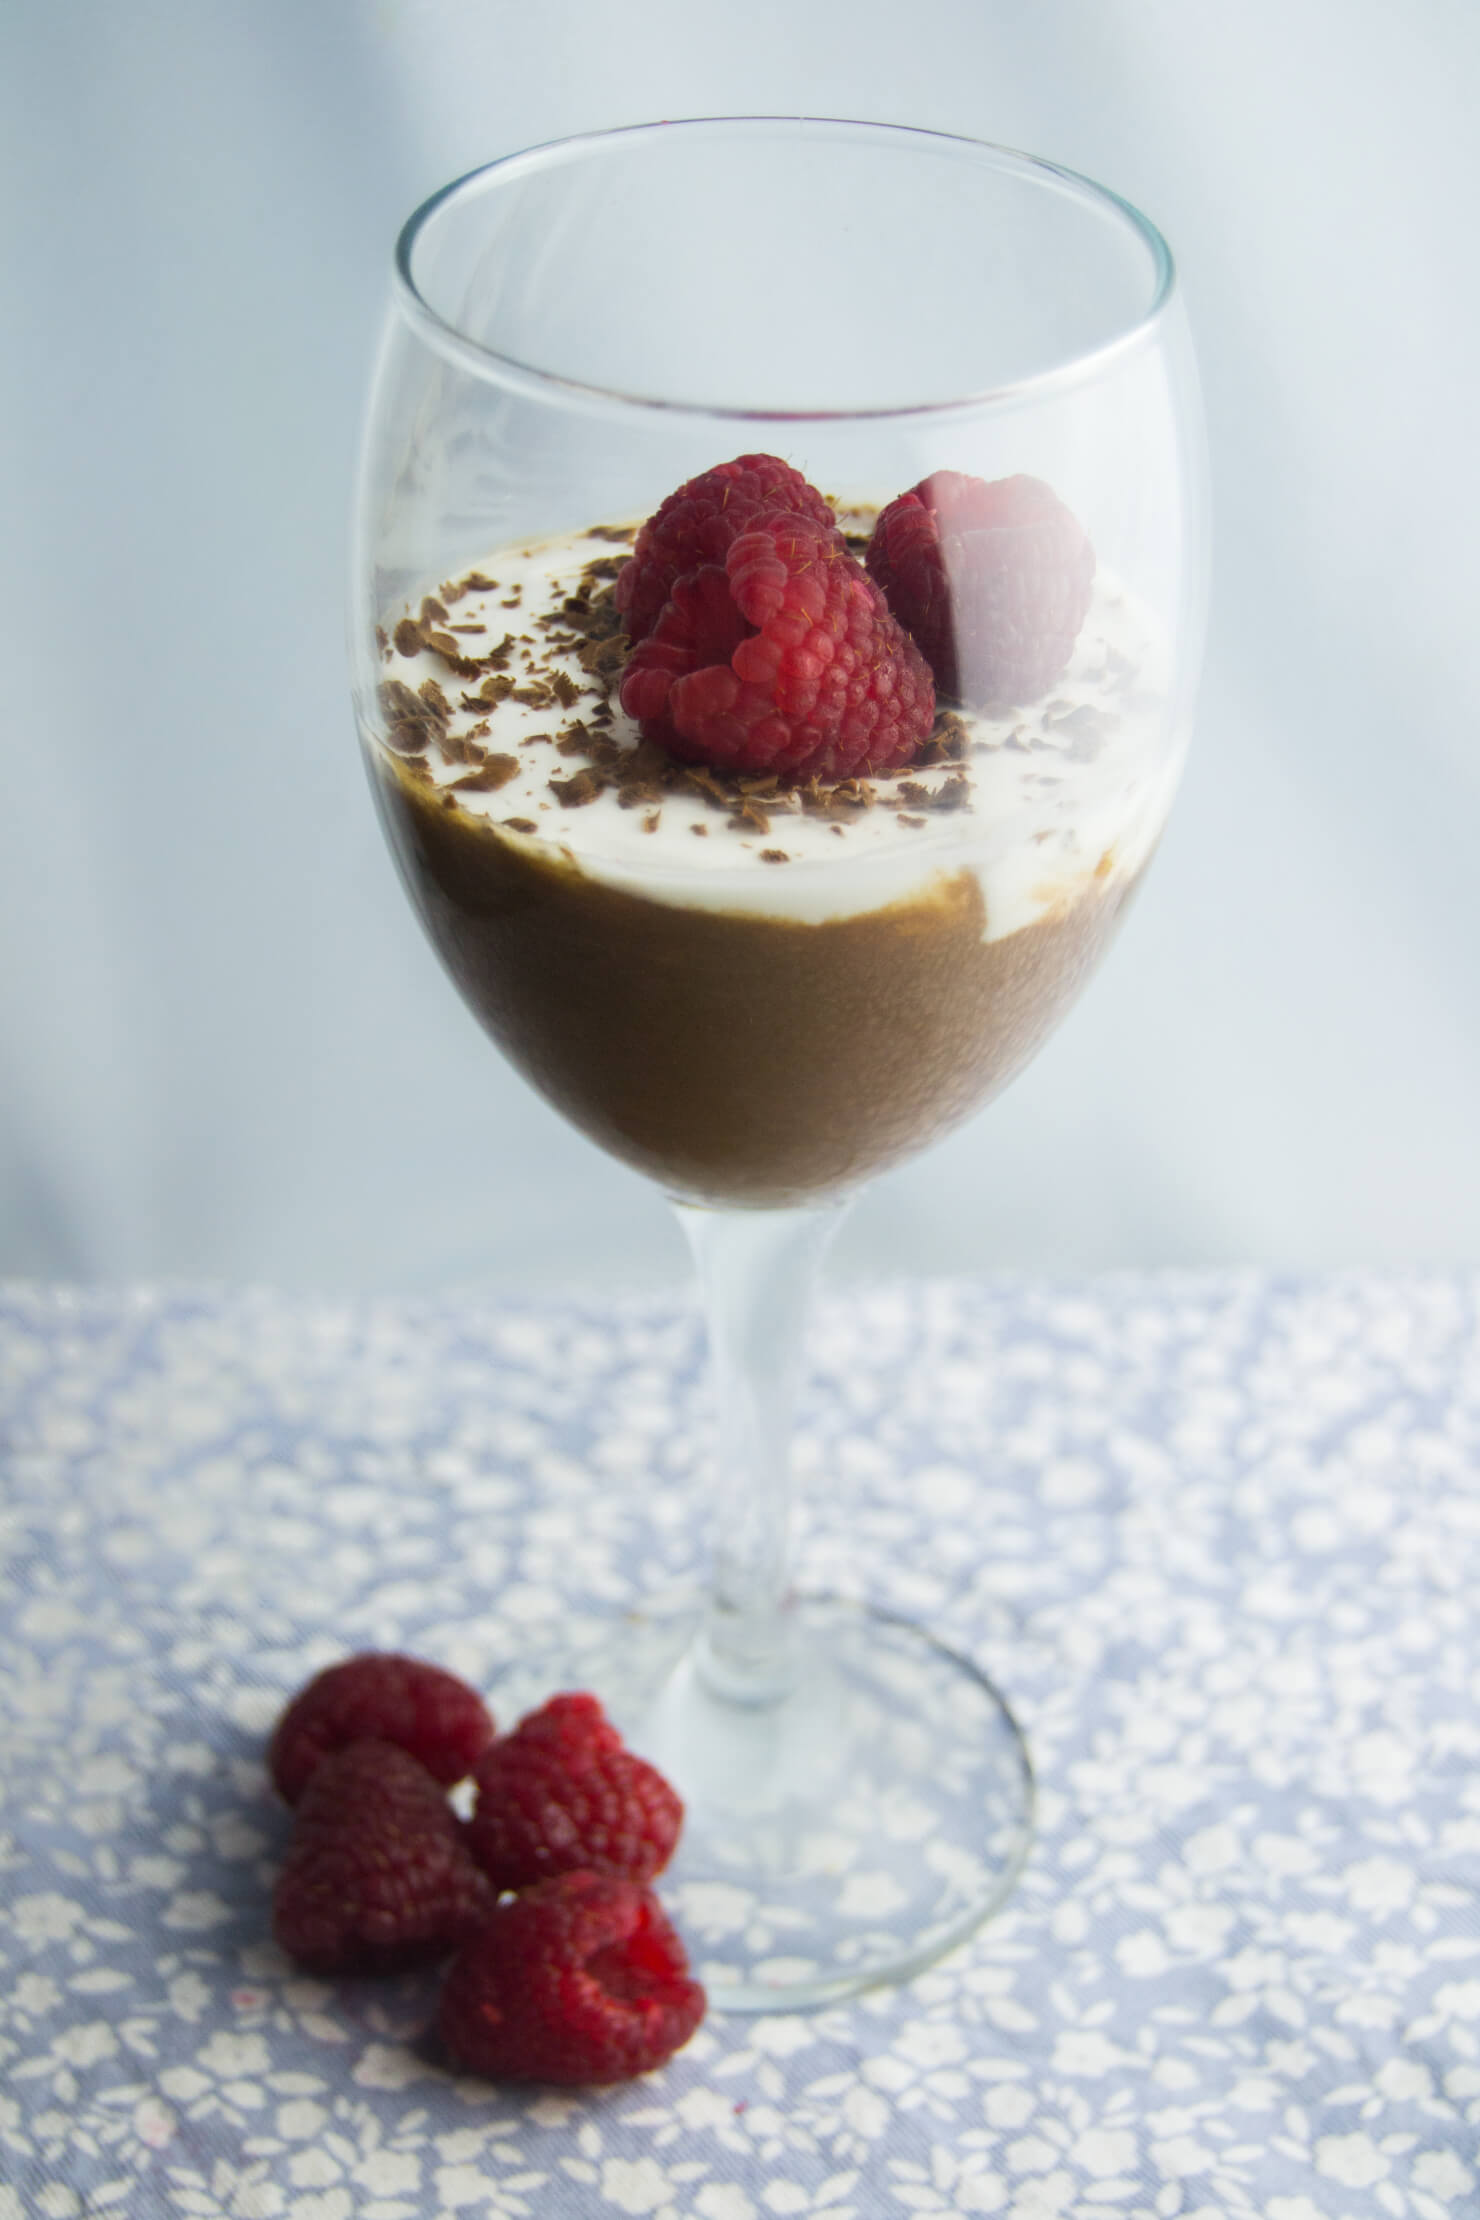 Amazing Valentine's Day Desserts - Vegan Chocolate and Coconut Cream Pudding